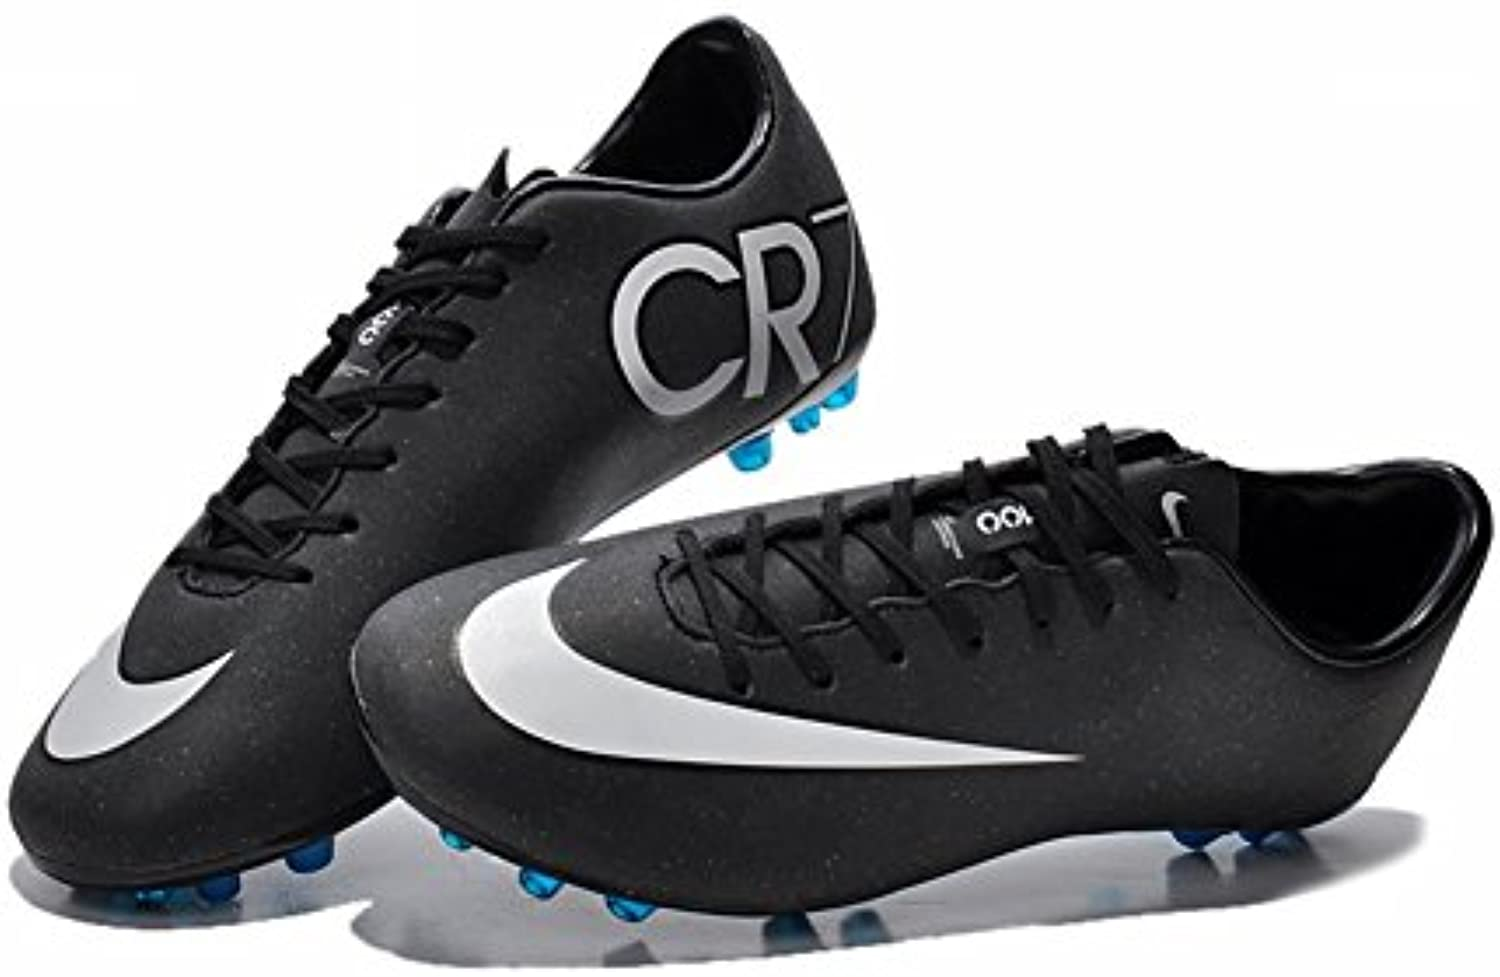 deosetly Schuhe Herren Fußball Mercurial Superfly CR7 IC Fußball Stiefel